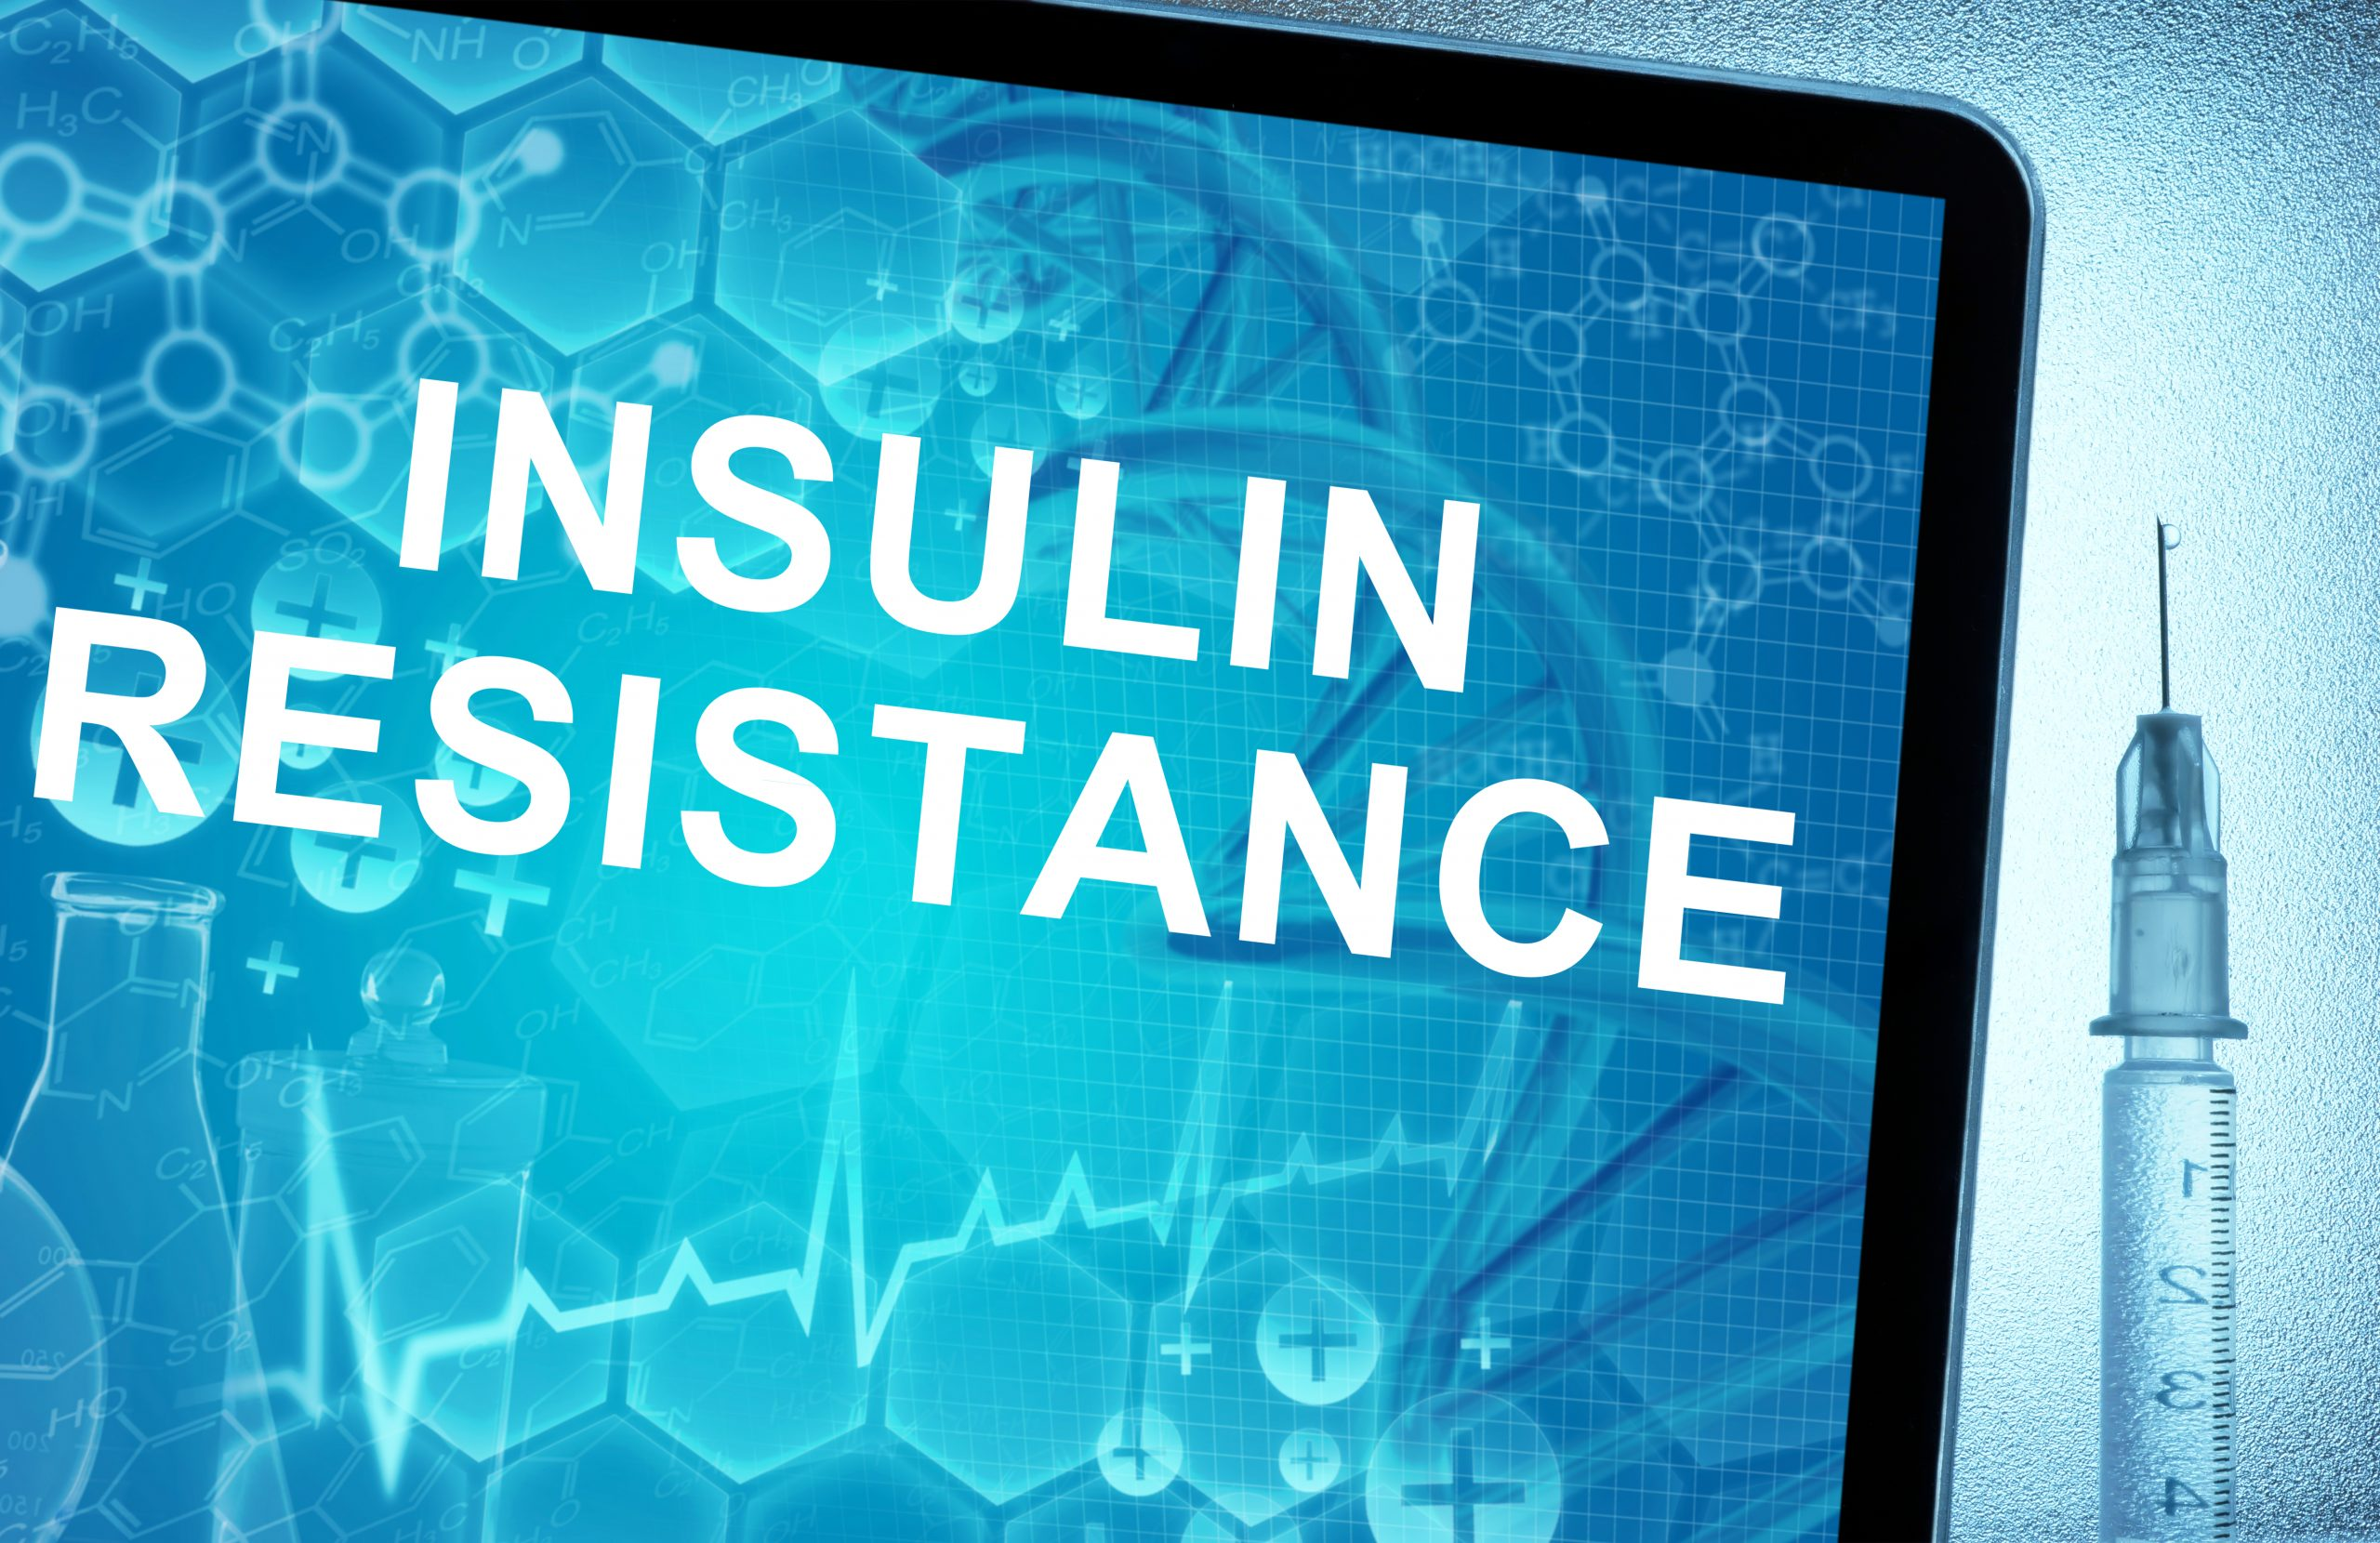 insulin resistance, what is insulin resistance, insulin resistance diet, insulin resistance symptoms, how to reverse insulin resistance